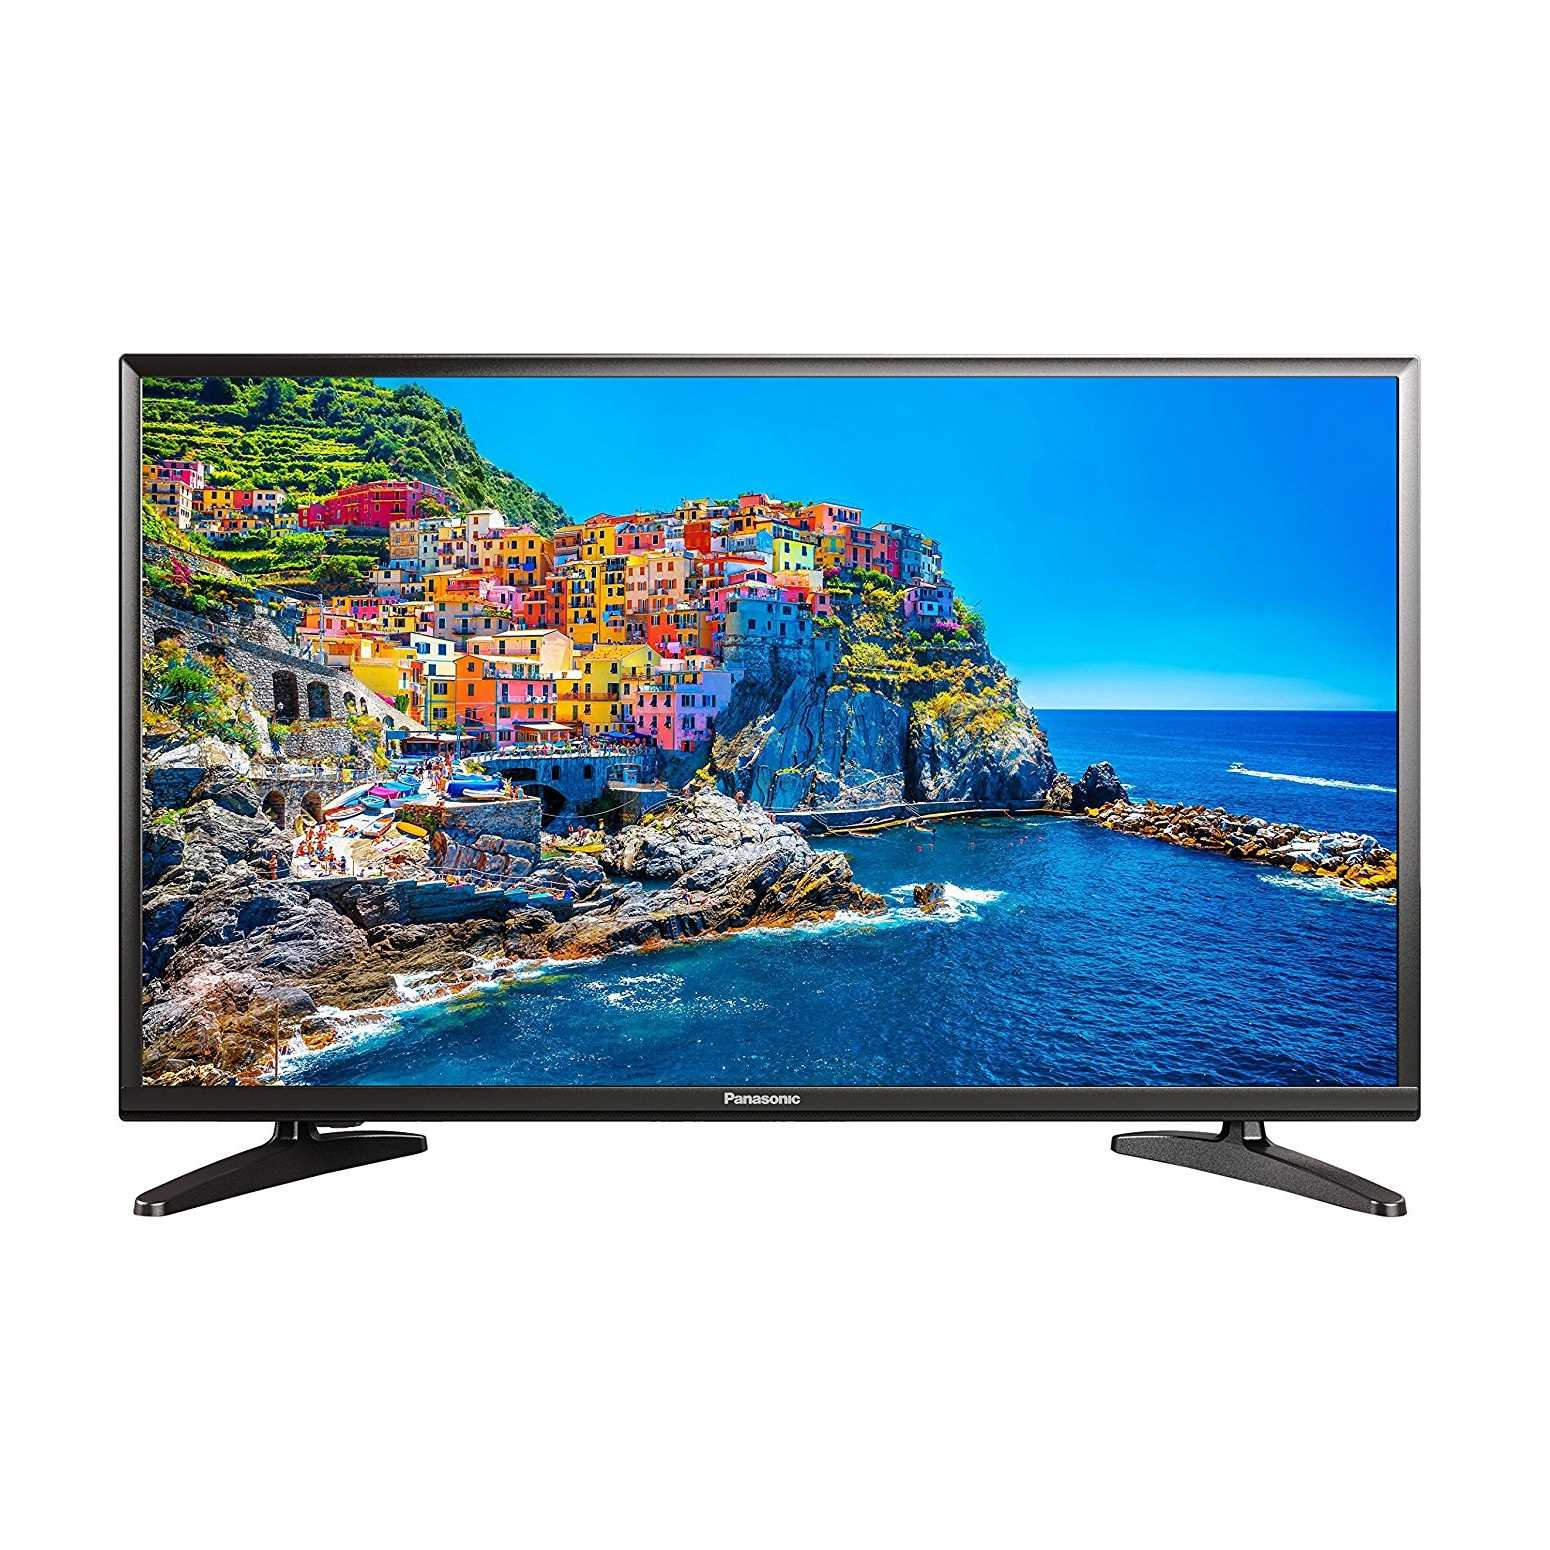 Panasonic TH-32D201DX 32 Inch HD Ready LED Television